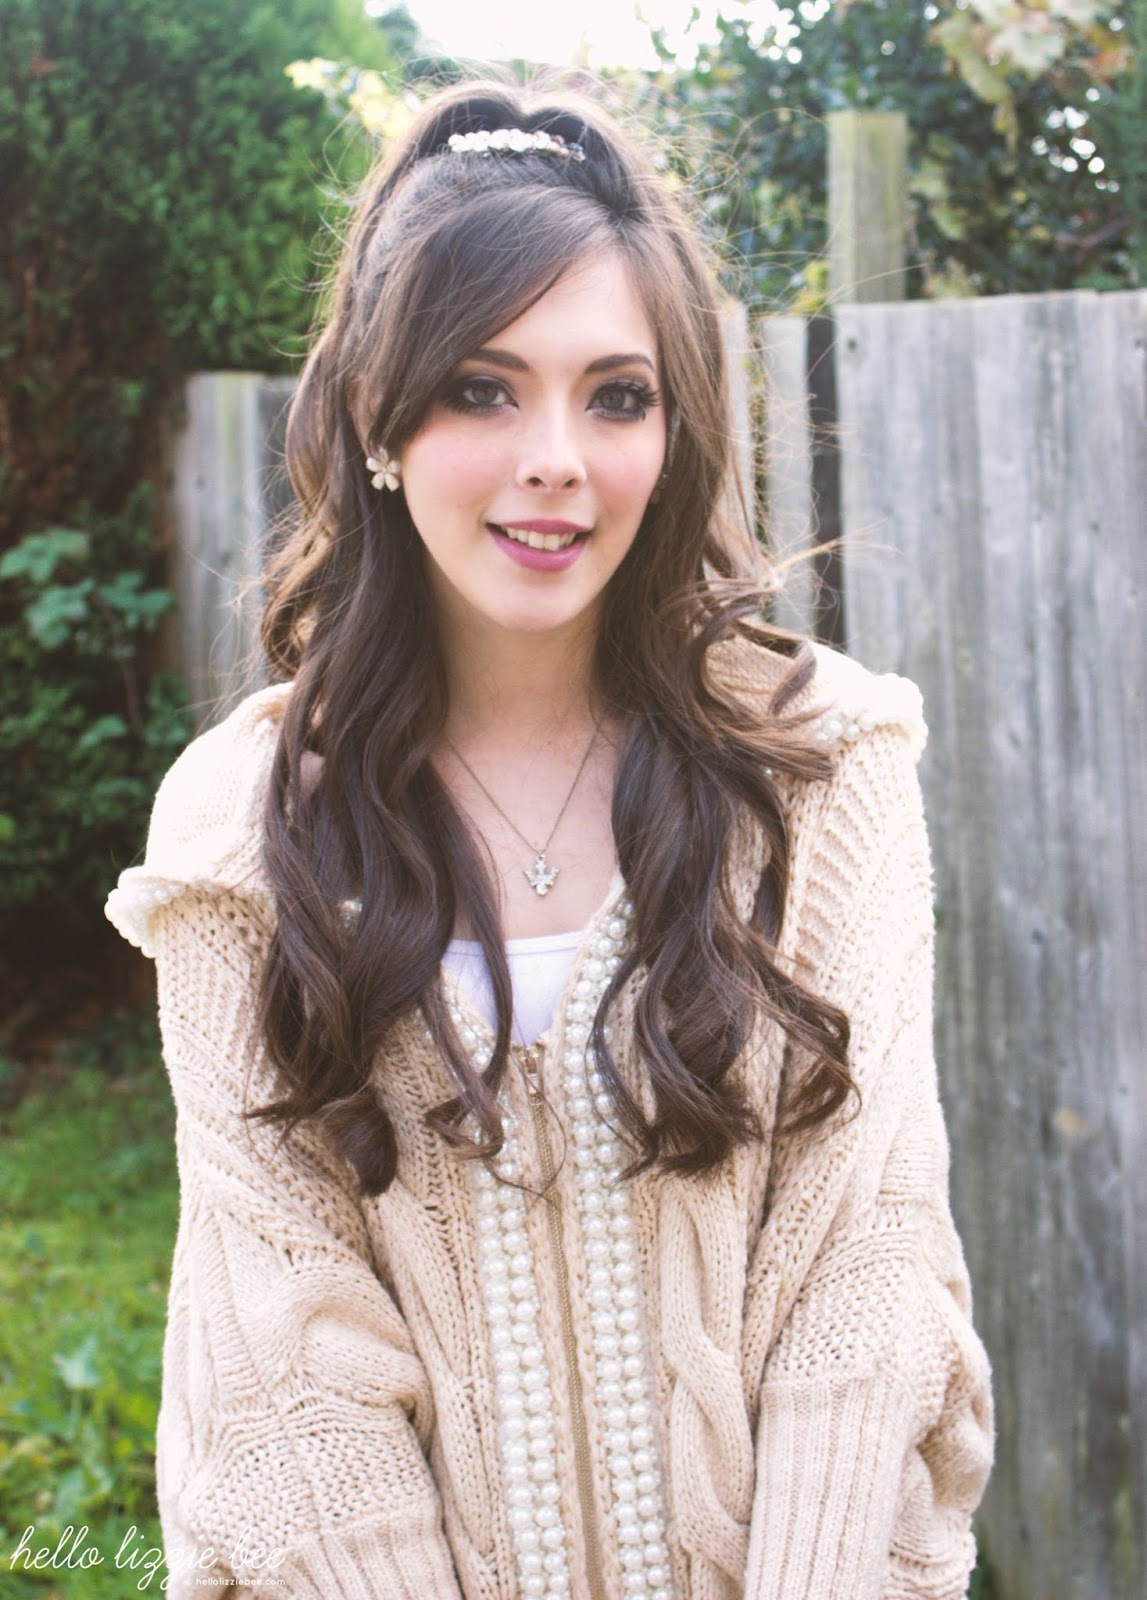 gyaru blog, gyaru blogger, lizzie bee